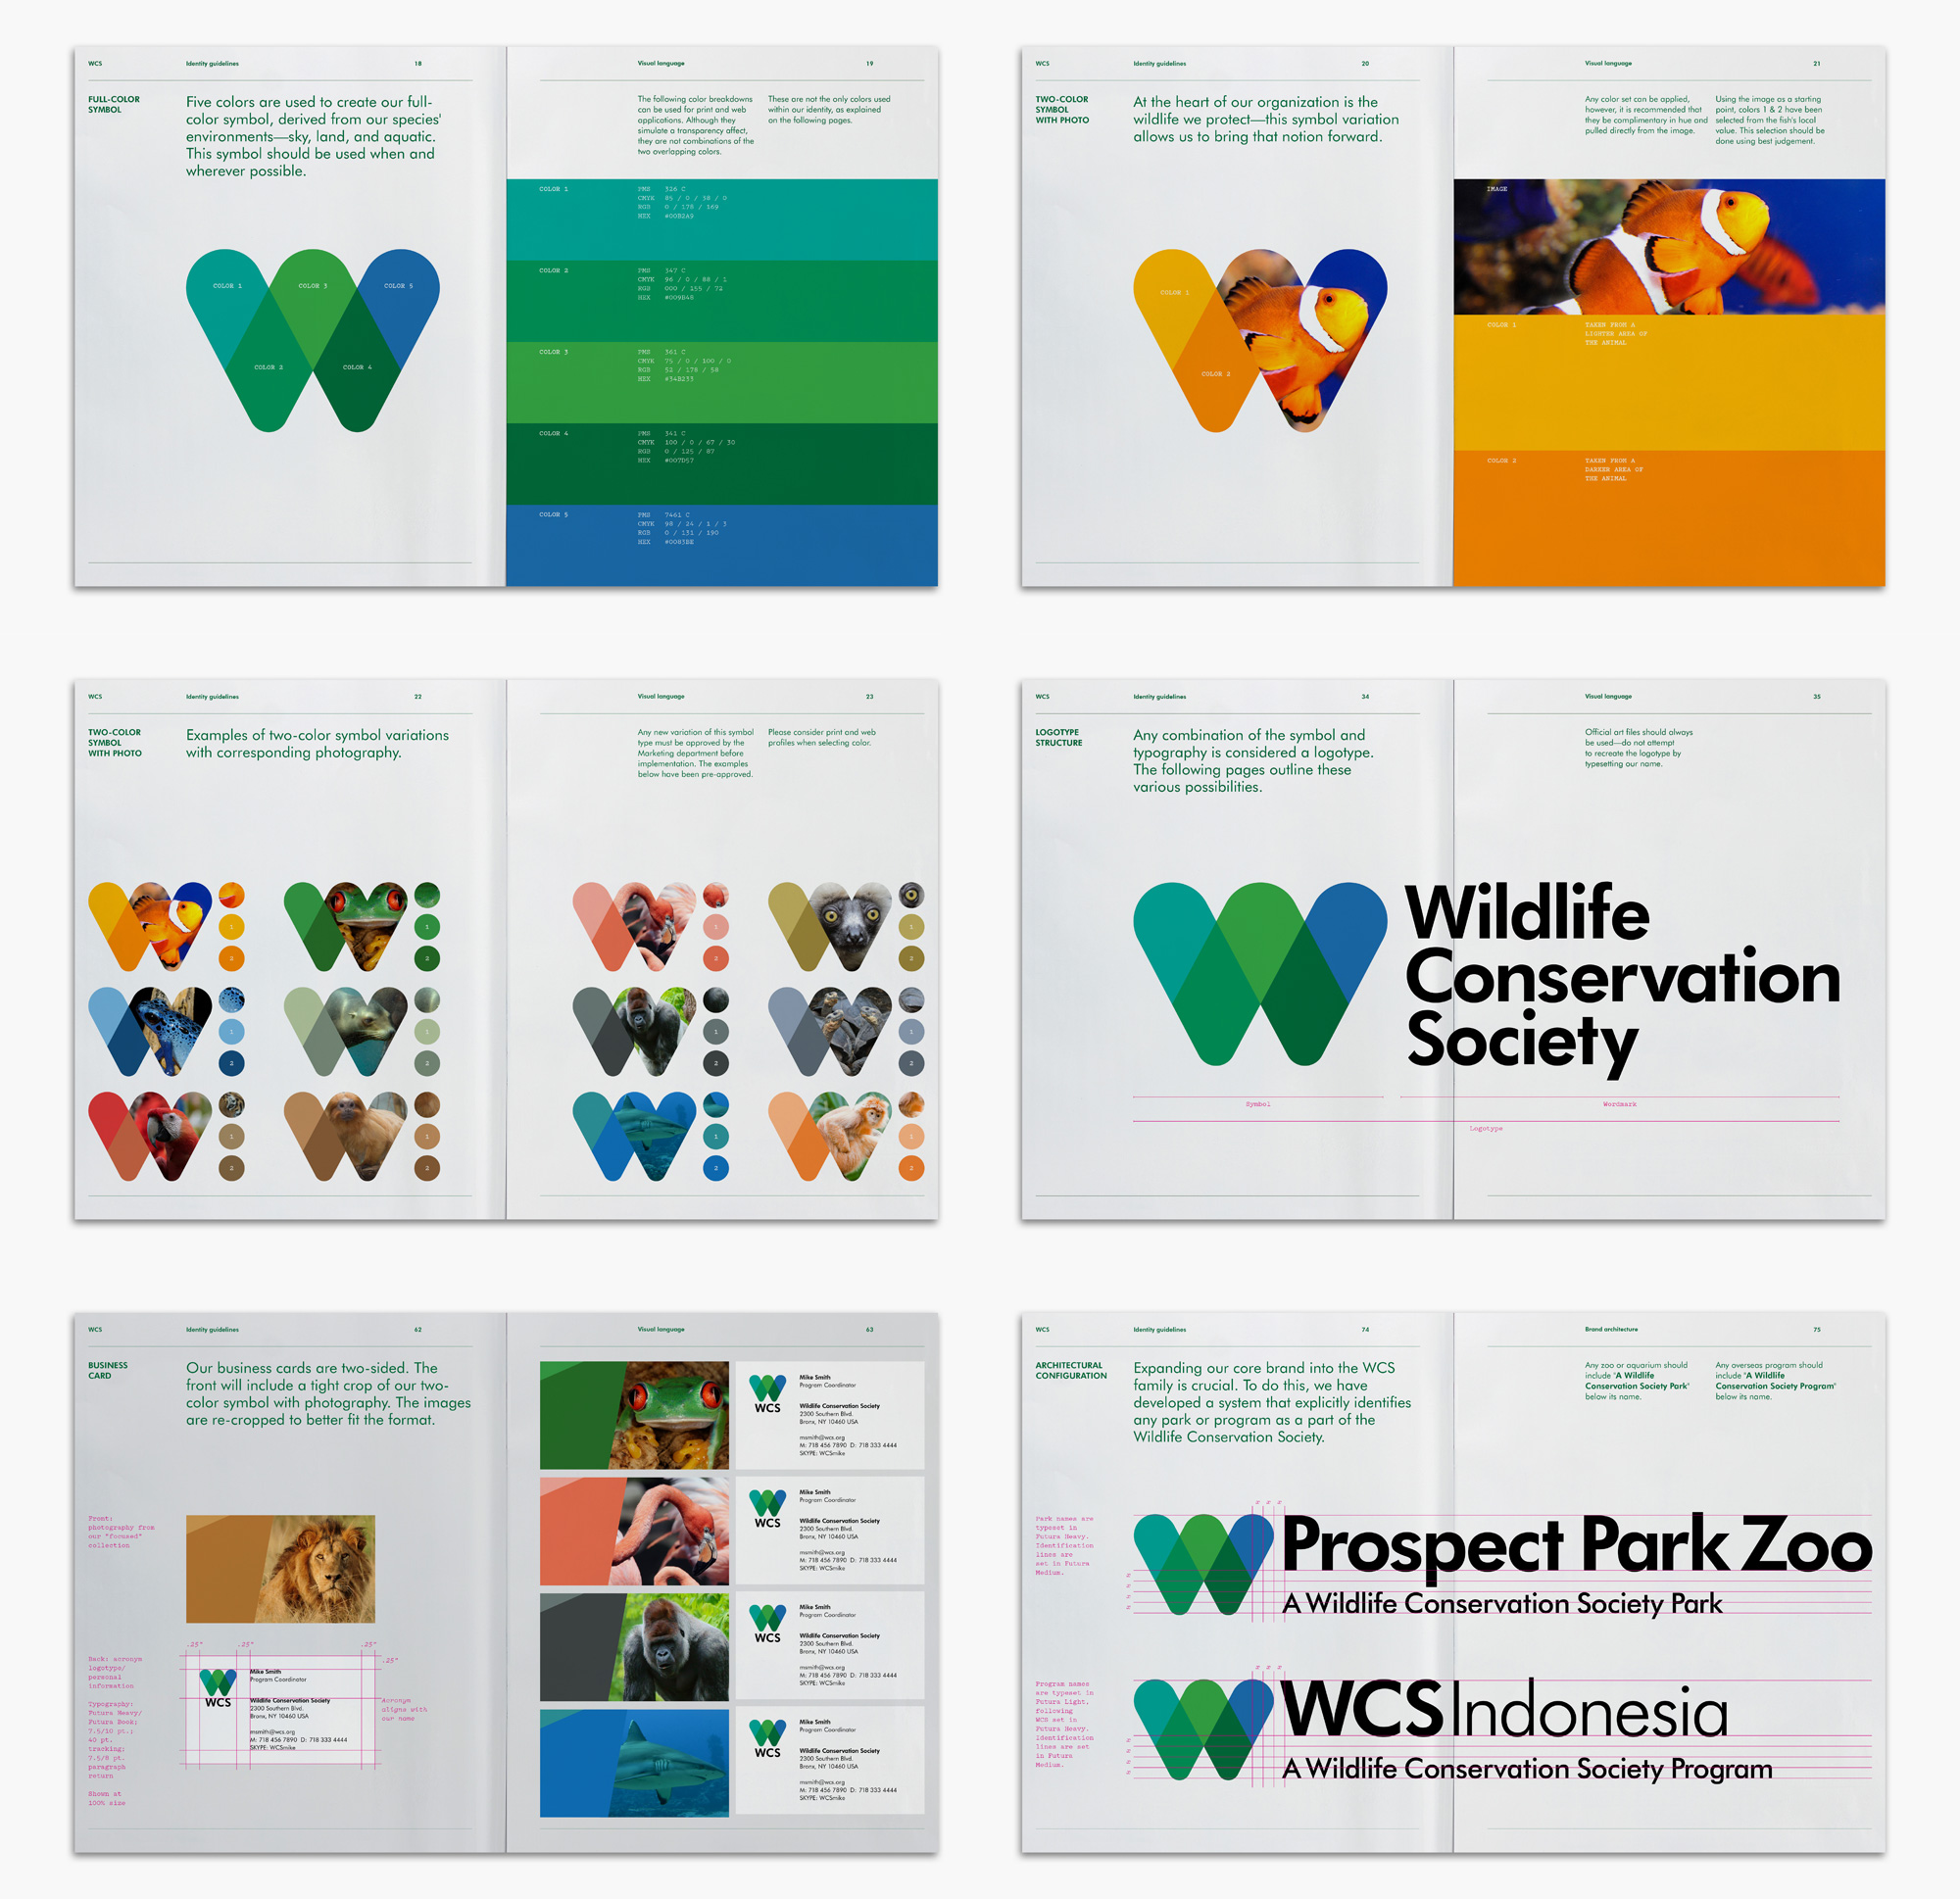 Brand New New Logo And Identity For Wildlife Conservation Society By Pentagram